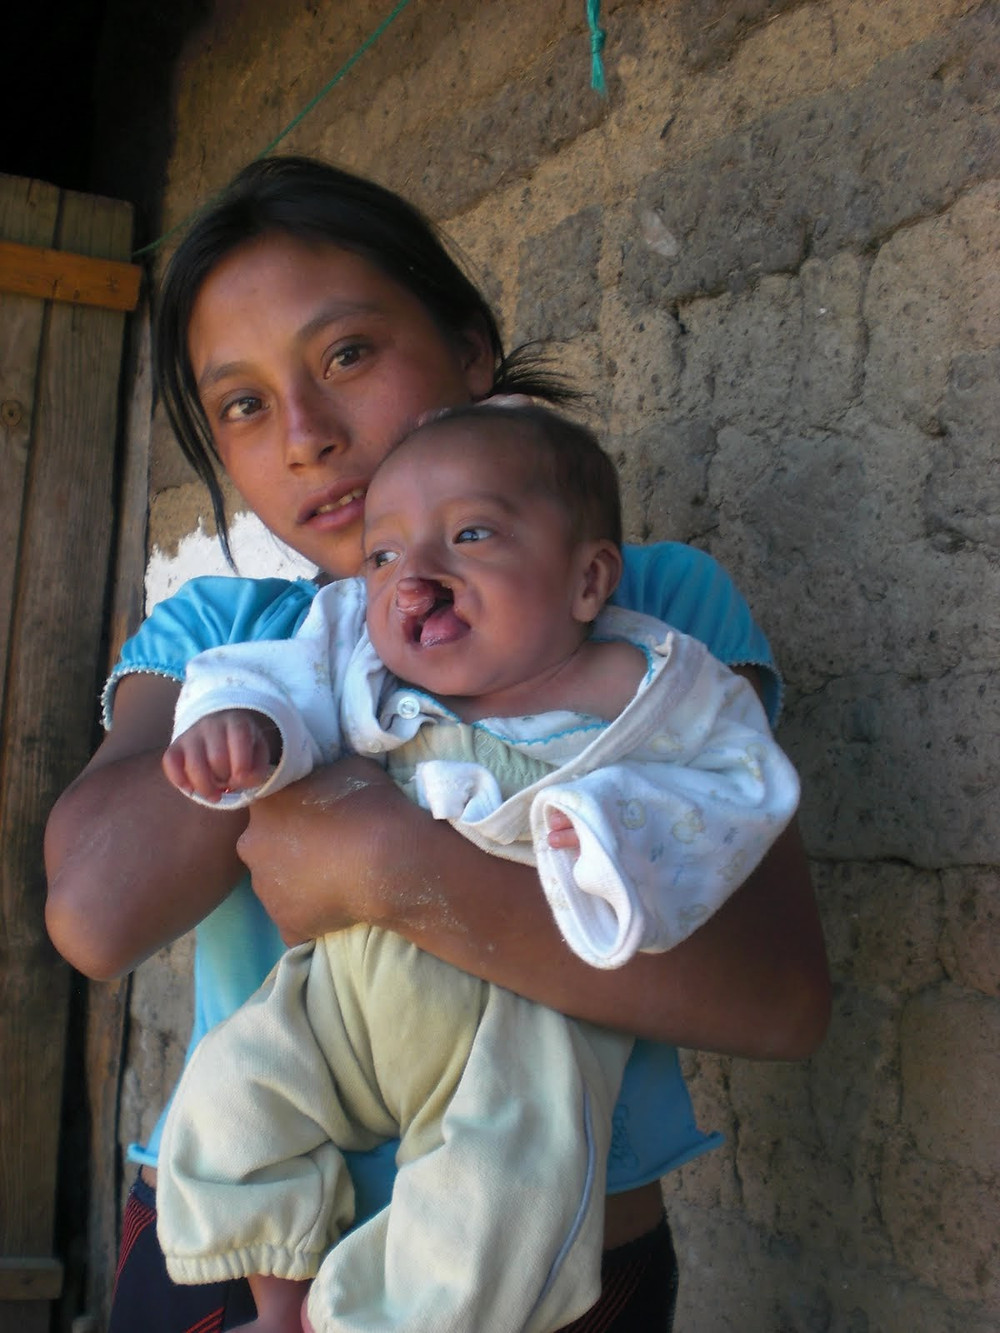 Lack of education, access to health services, and inadequate nutrition can lead to a poor start in life